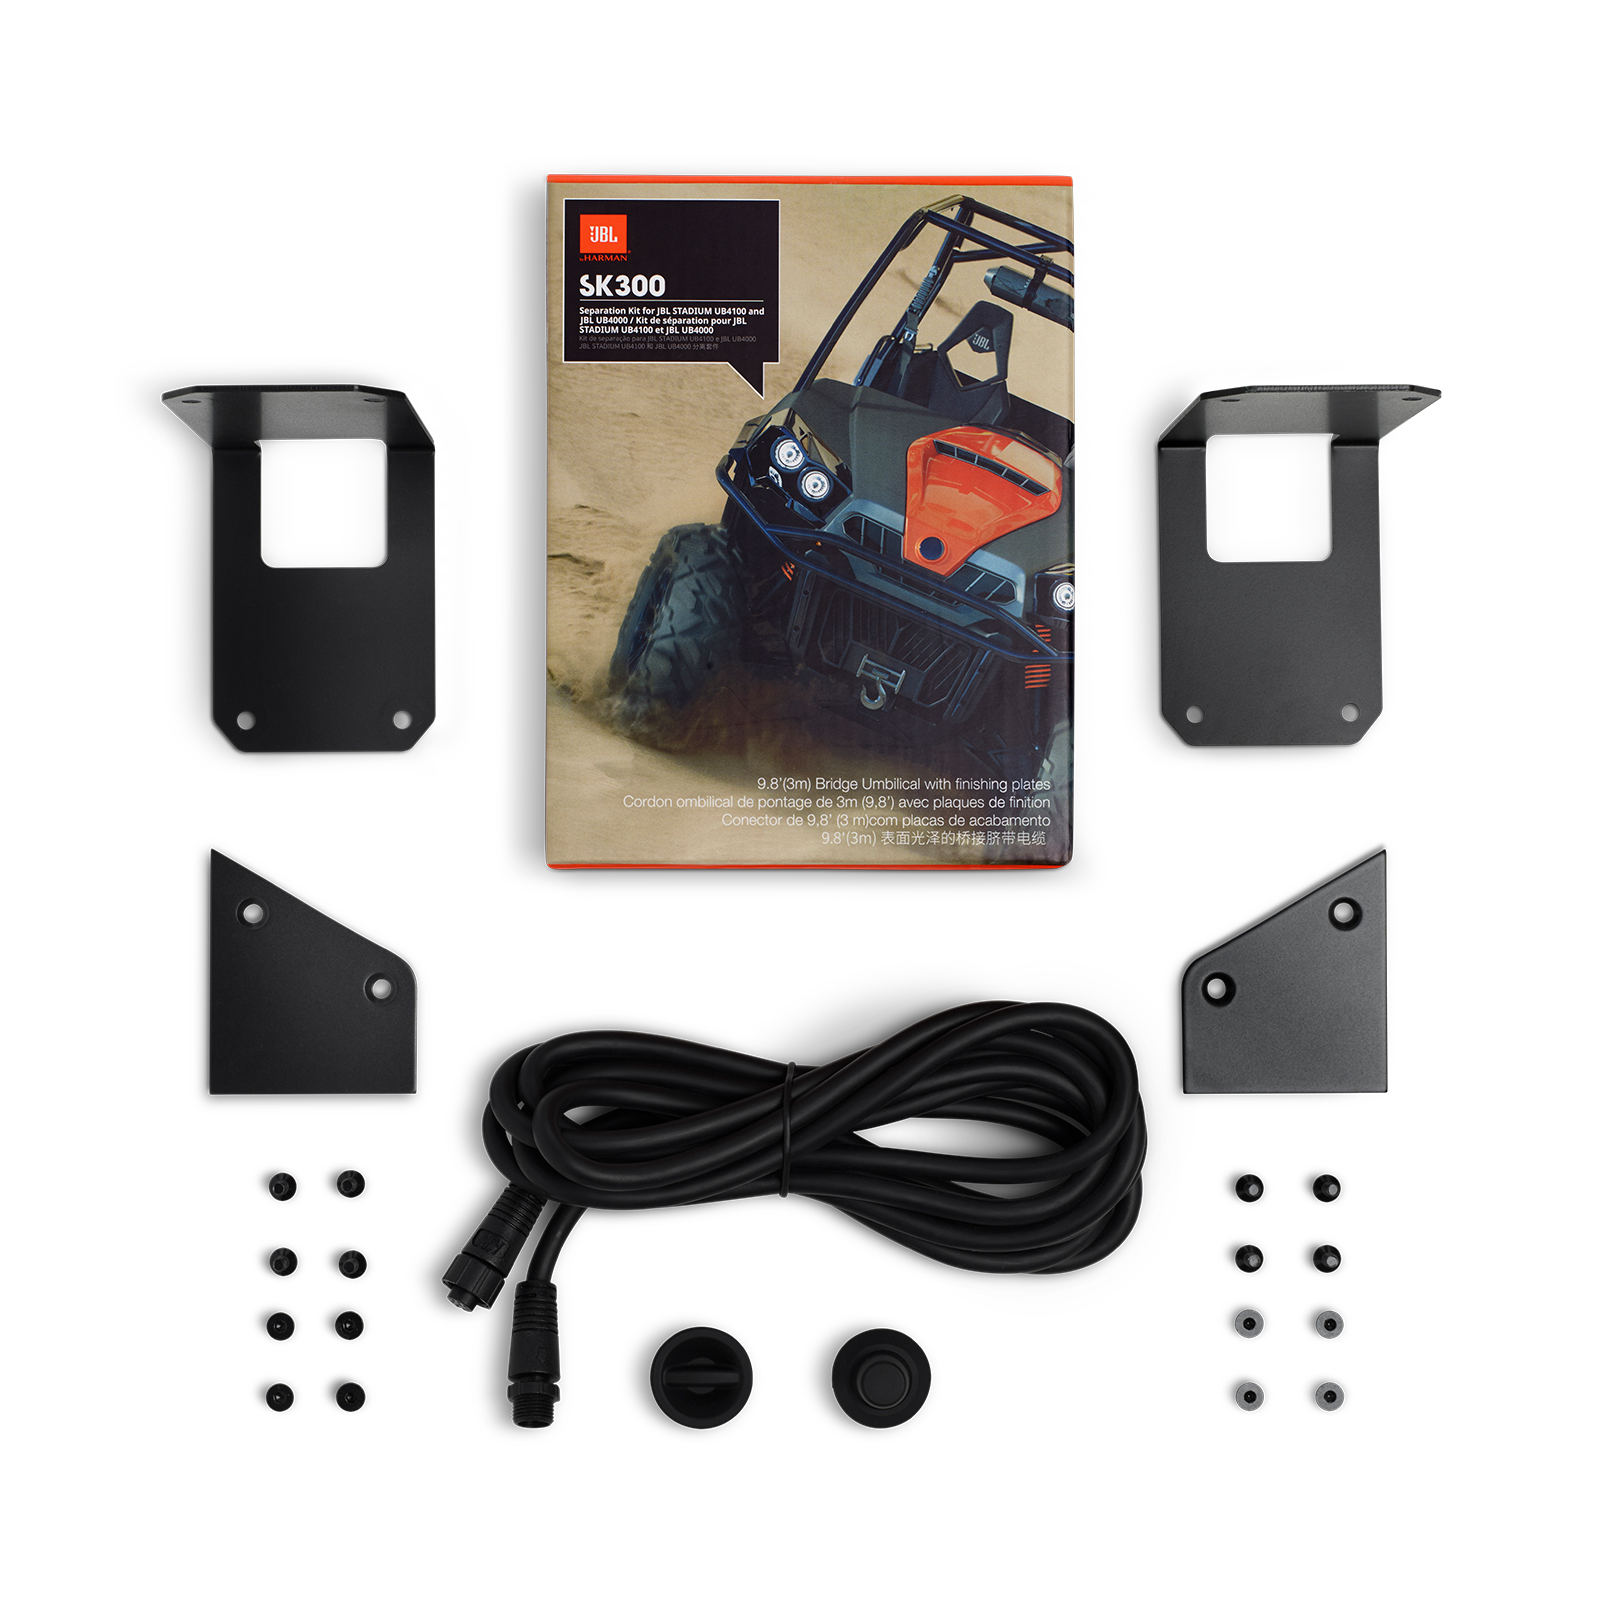 JBL SK300 Separation Kit - Black - 9.8'(3m) Bridge Umbilical with finishing plates - Detailshot 1